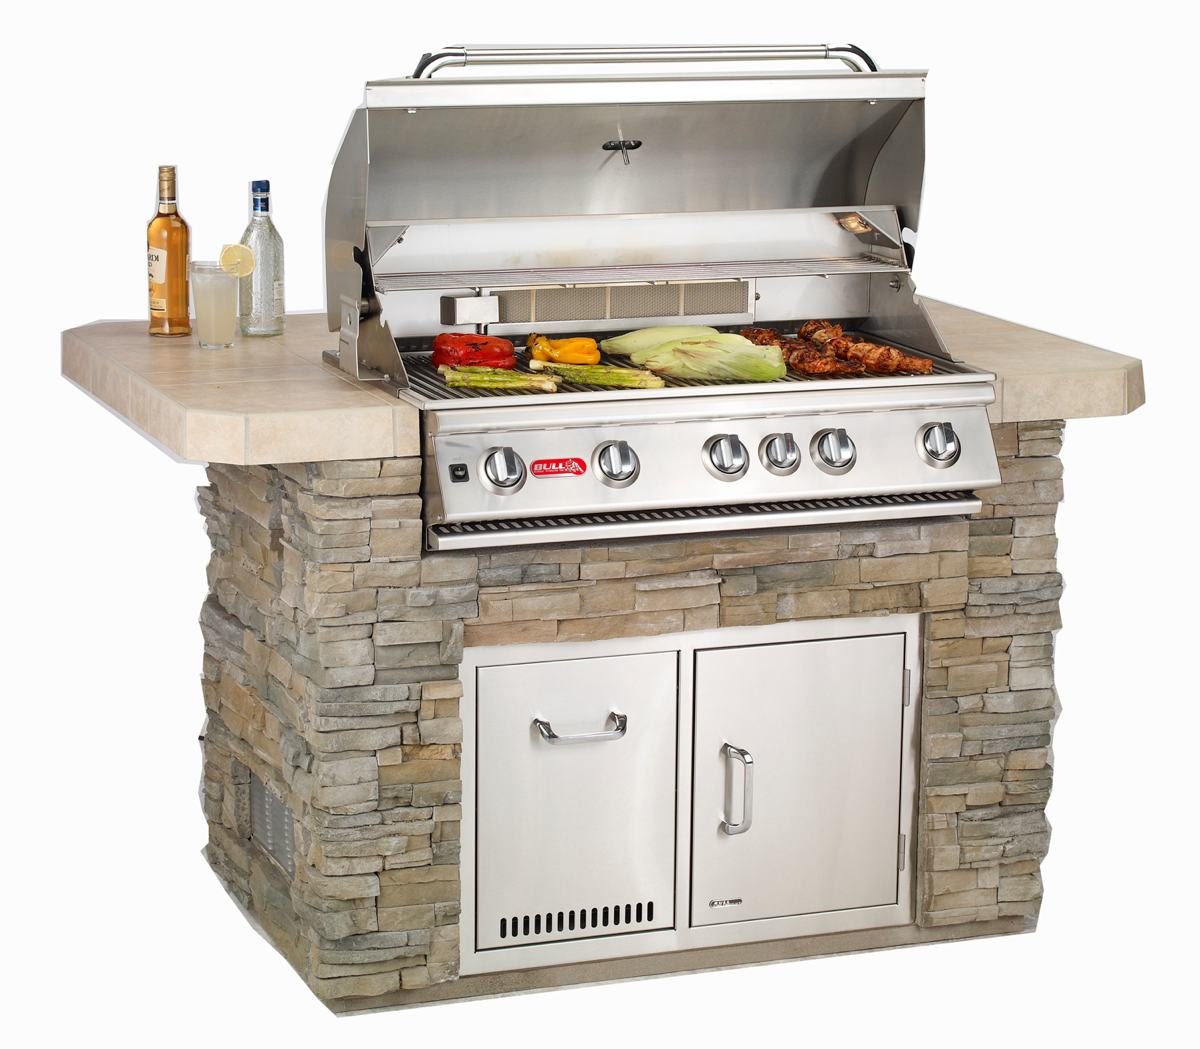 bull outdoor products bbq 57569 brahma 90